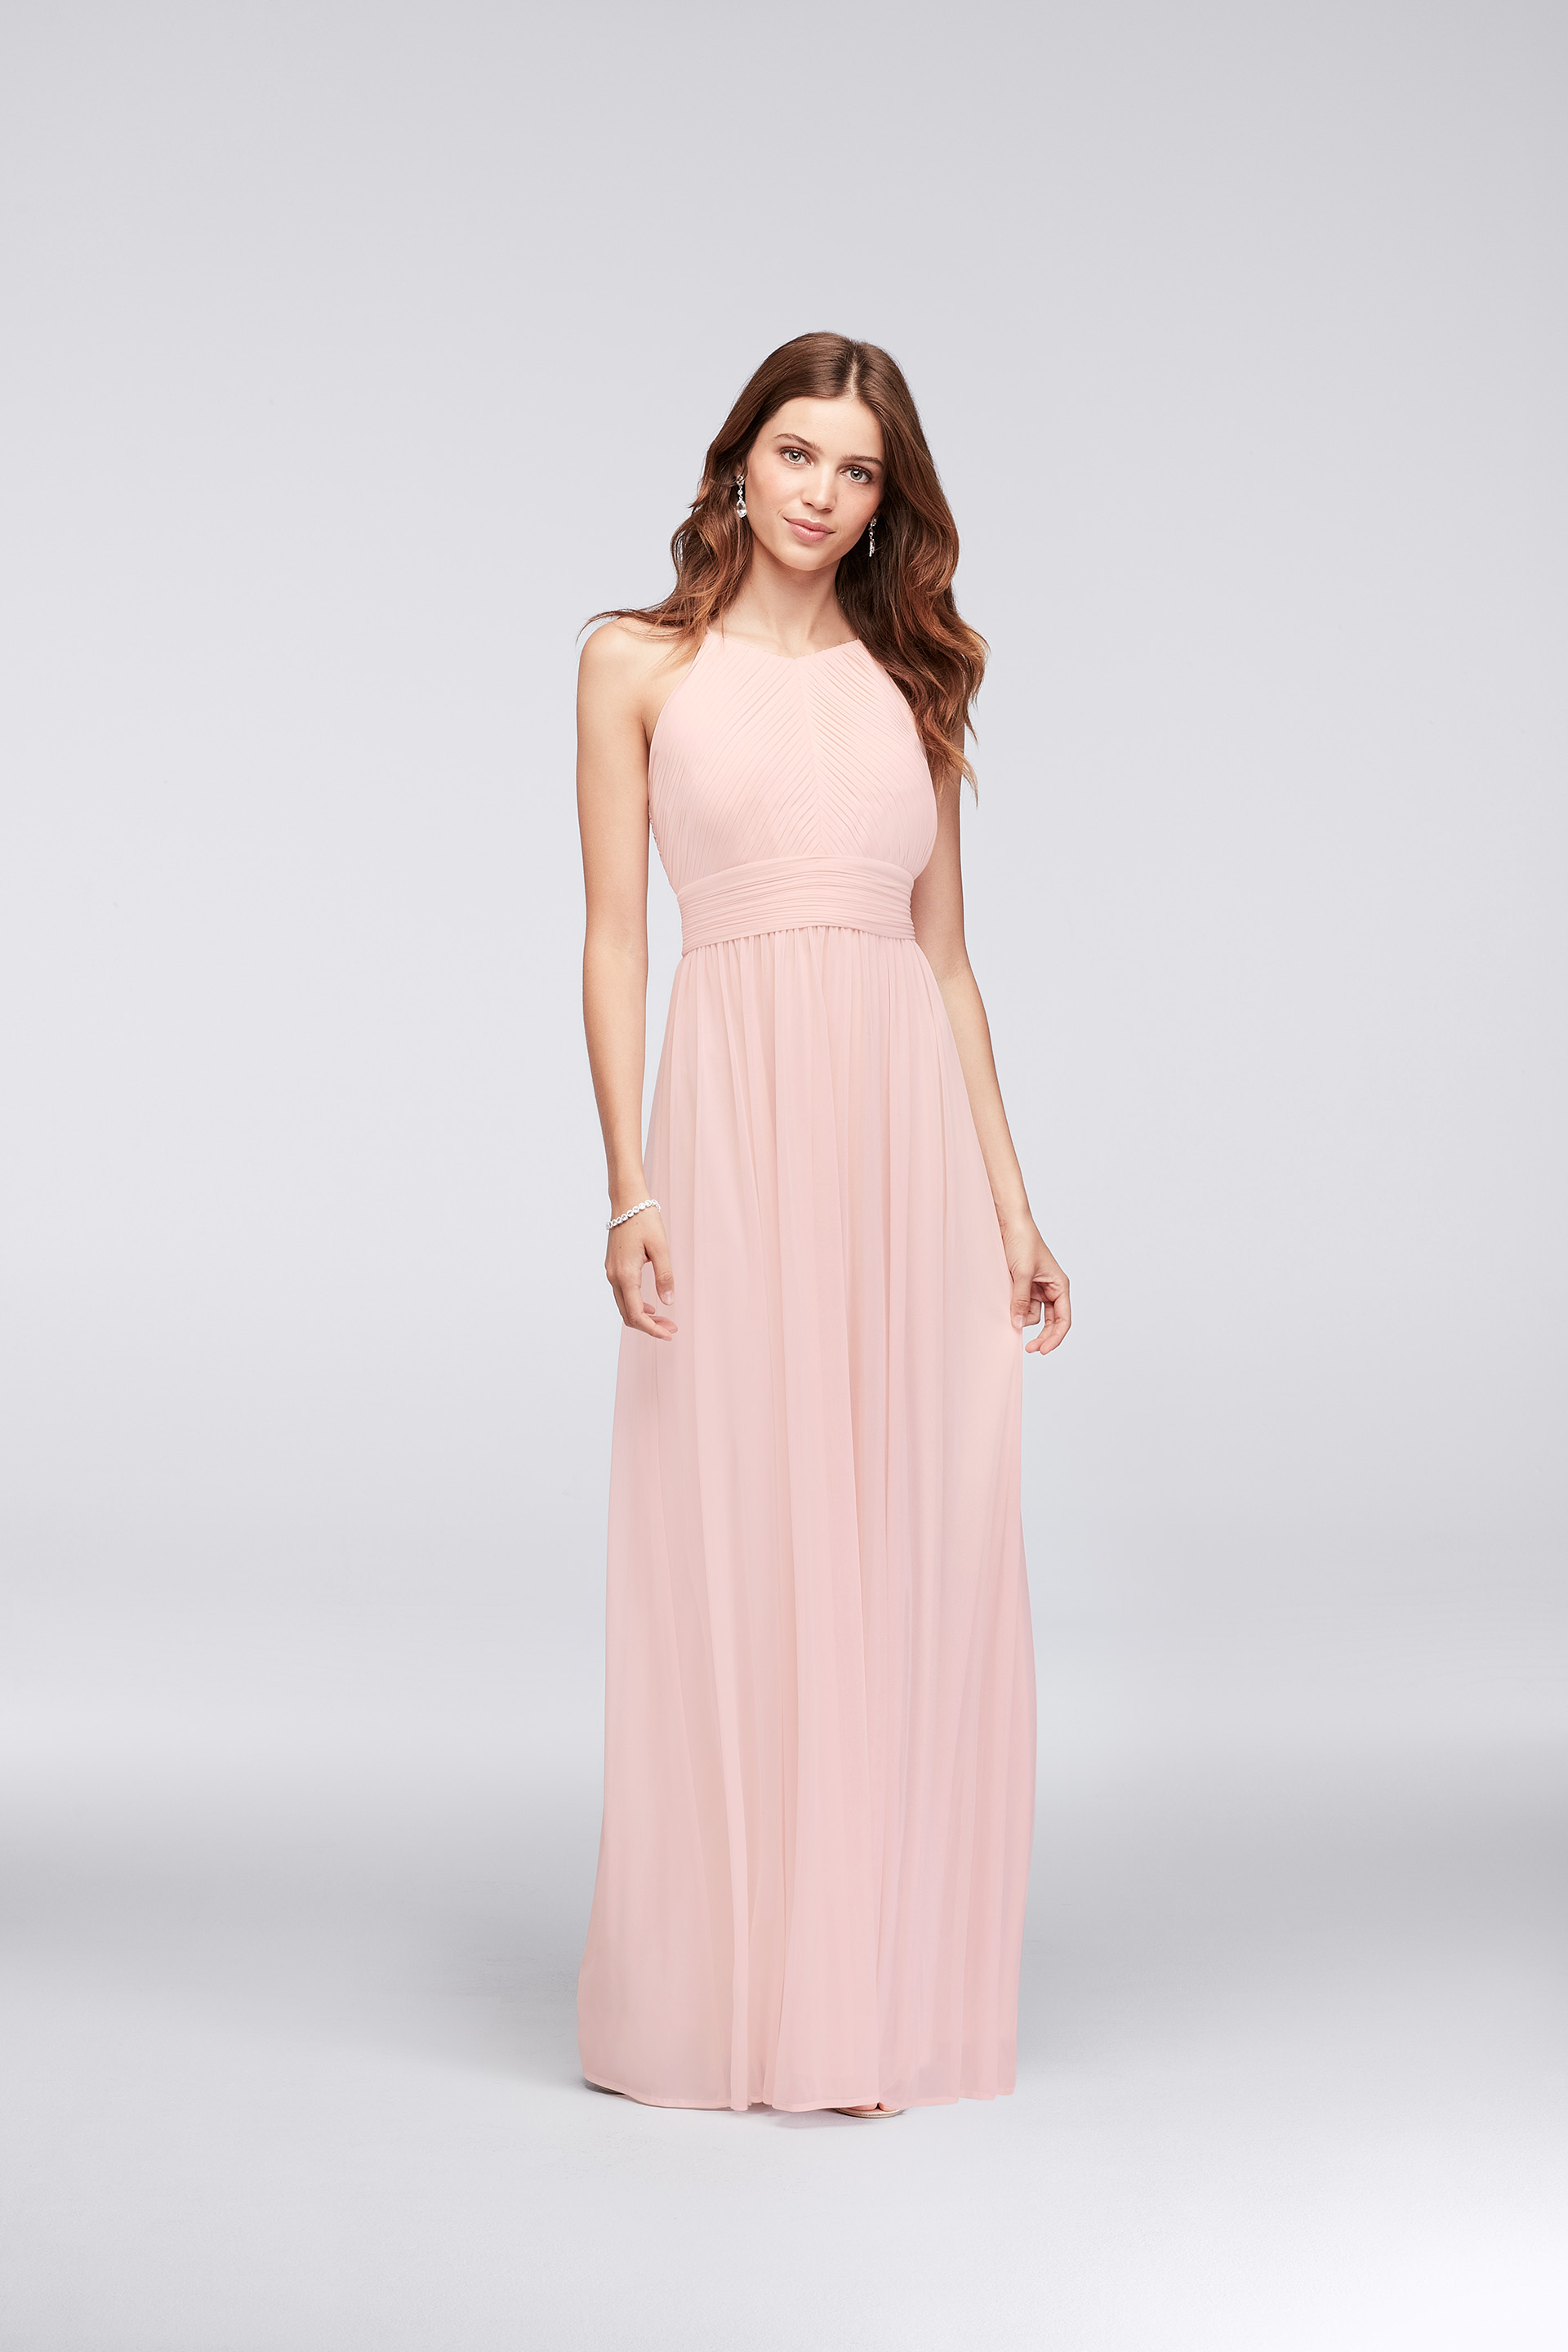 Davids bridal to release bridesmaid dresses for under 100 reverie for davids bridal bridesmaid dresses credit davids bridal ombrellifo Image collections